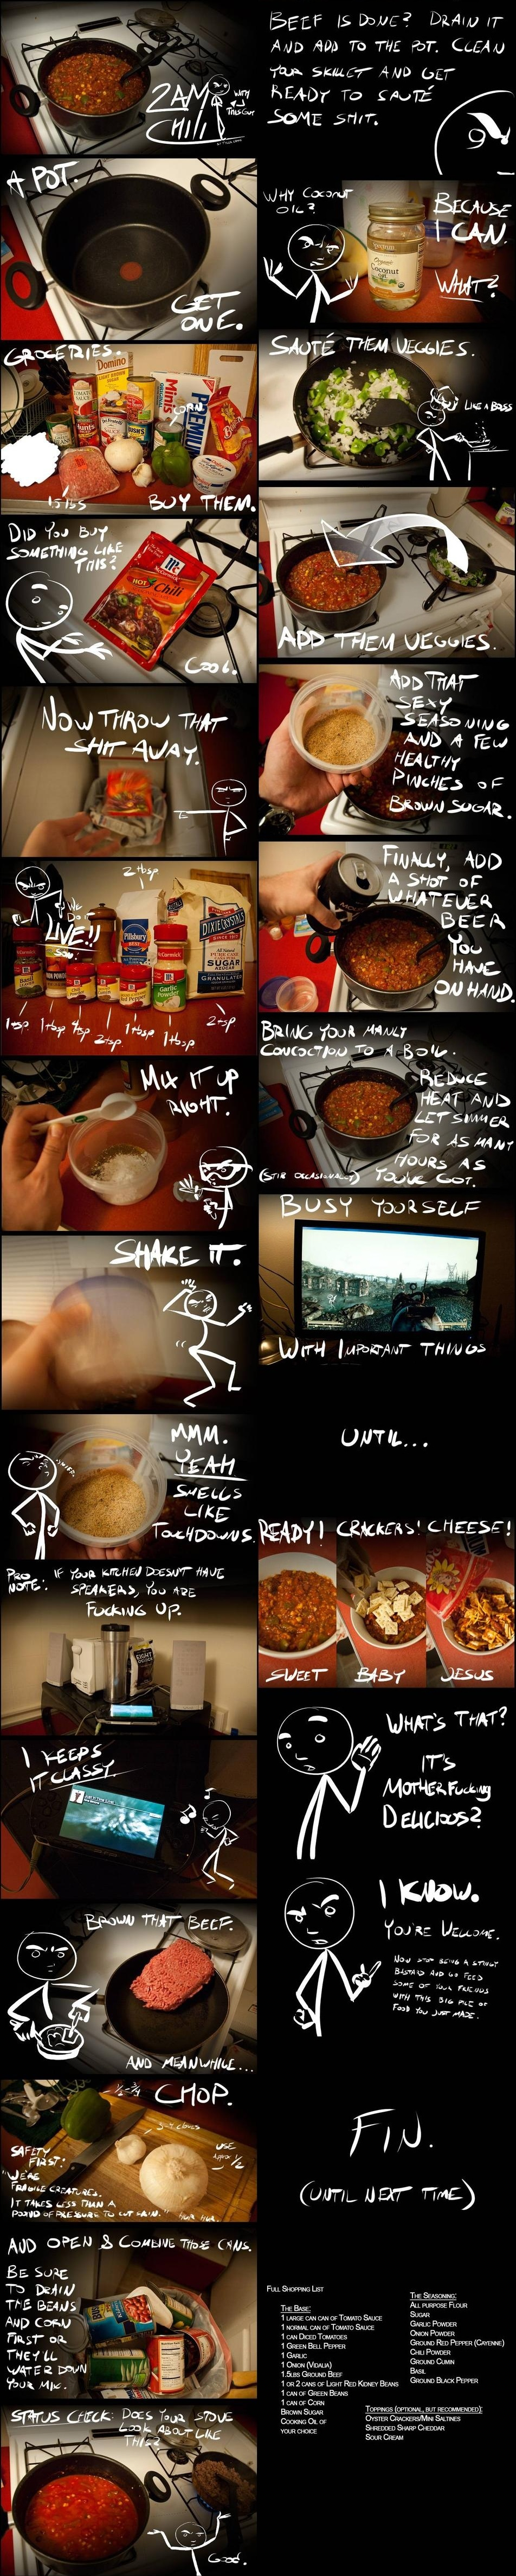 2am chili this is funny and it is the best chili ever secret